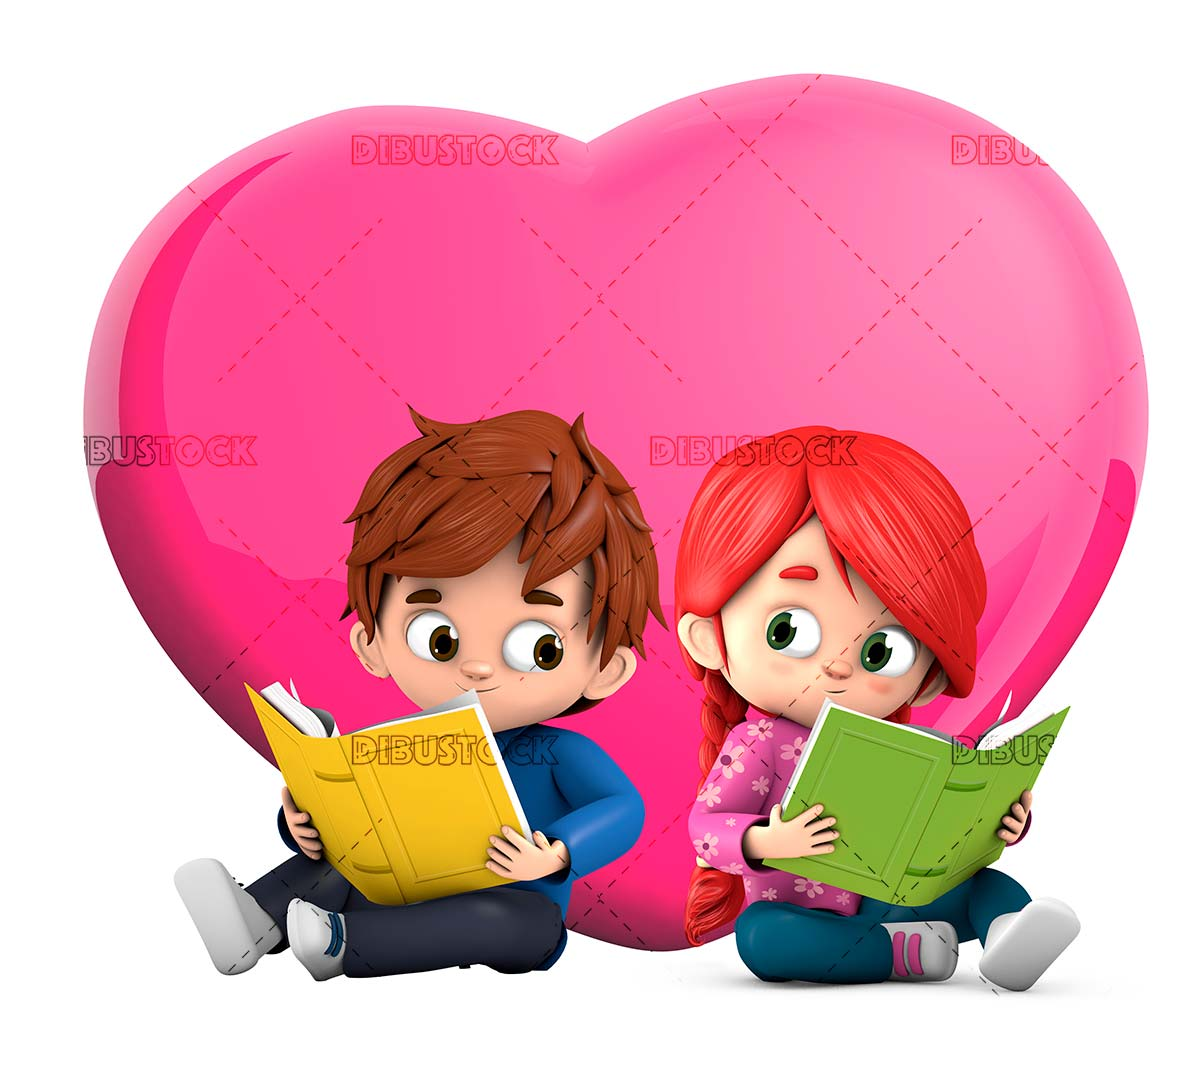 In love reading a book with a heart behind